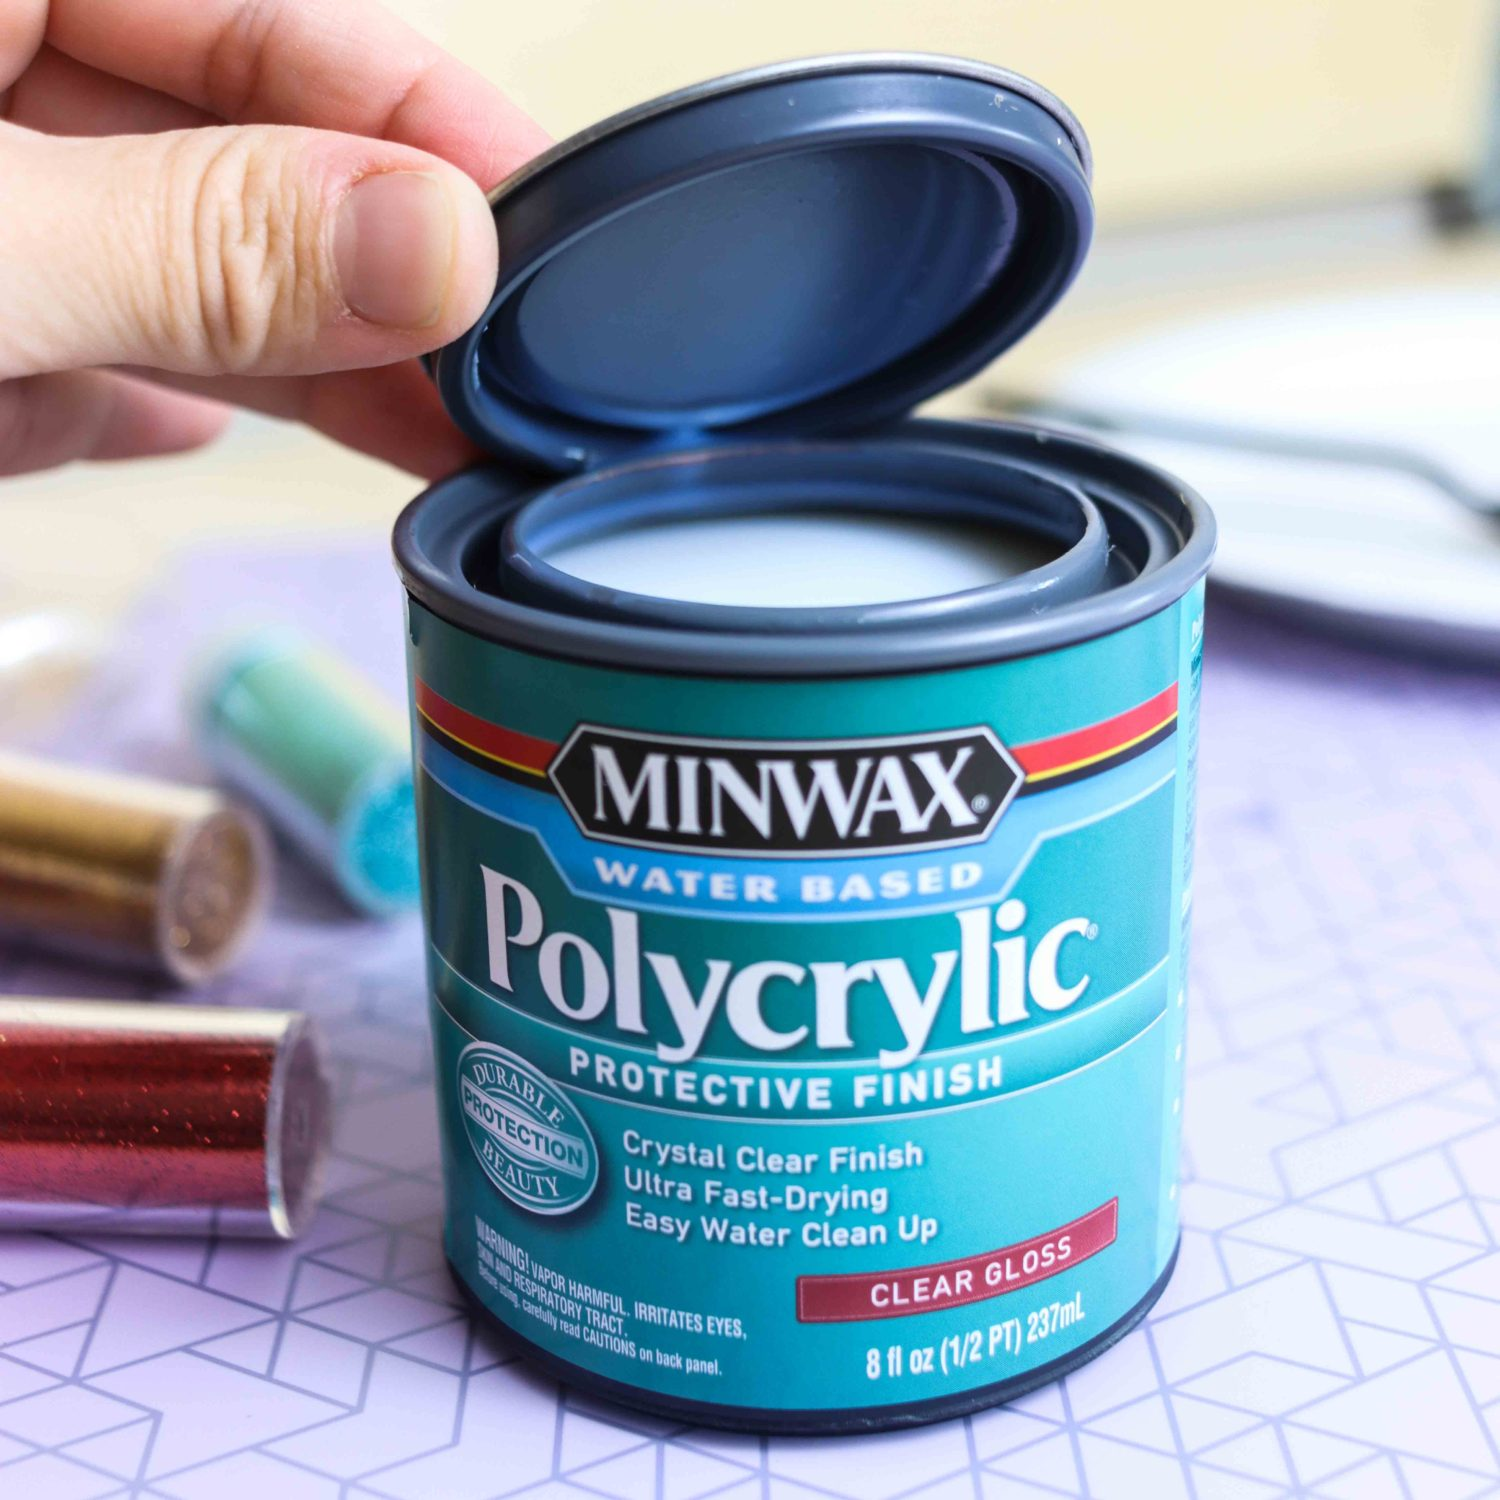 Polycrylic can for Christmas ornaments